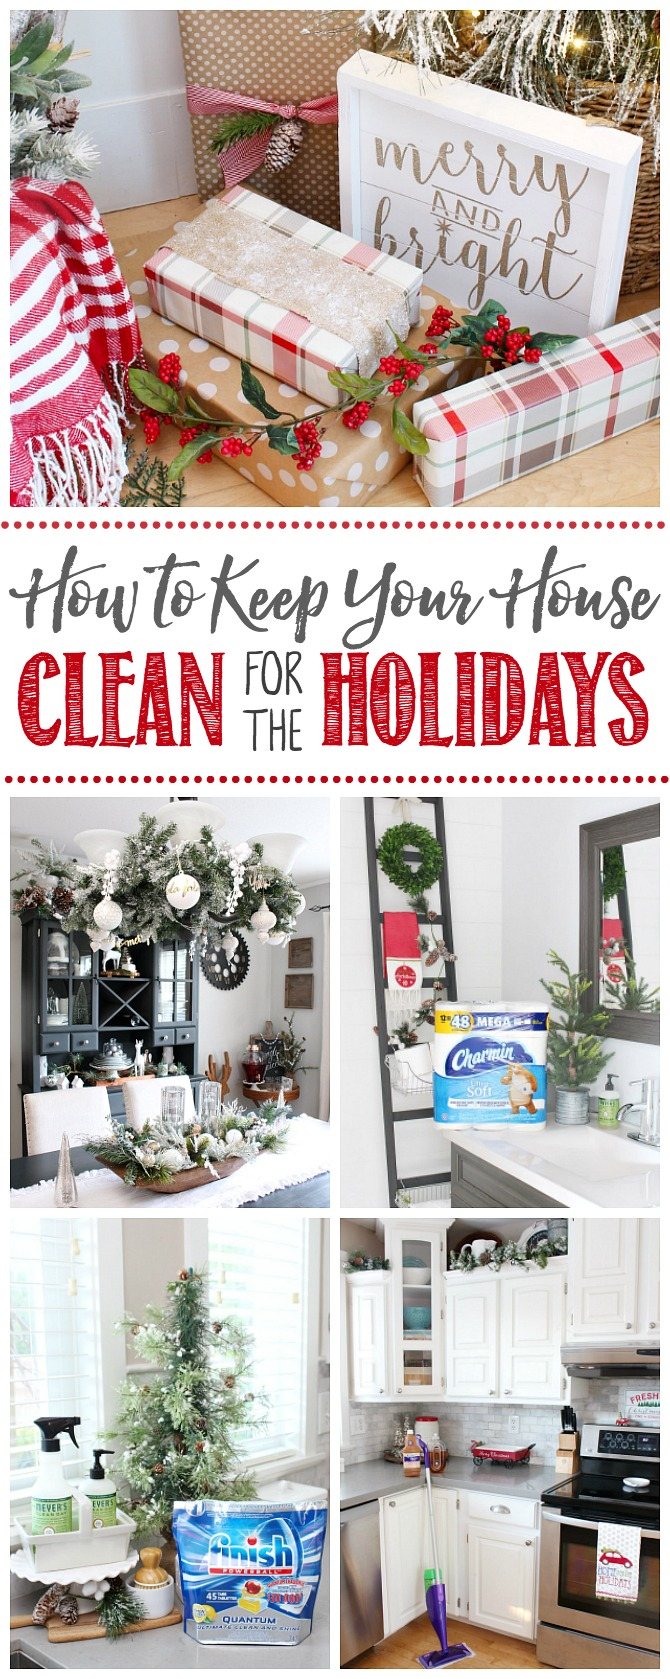 How to Keep Your Home Clean for the Holidays. Various rooms decorated for Christmas and stocked with cleaning supplies.